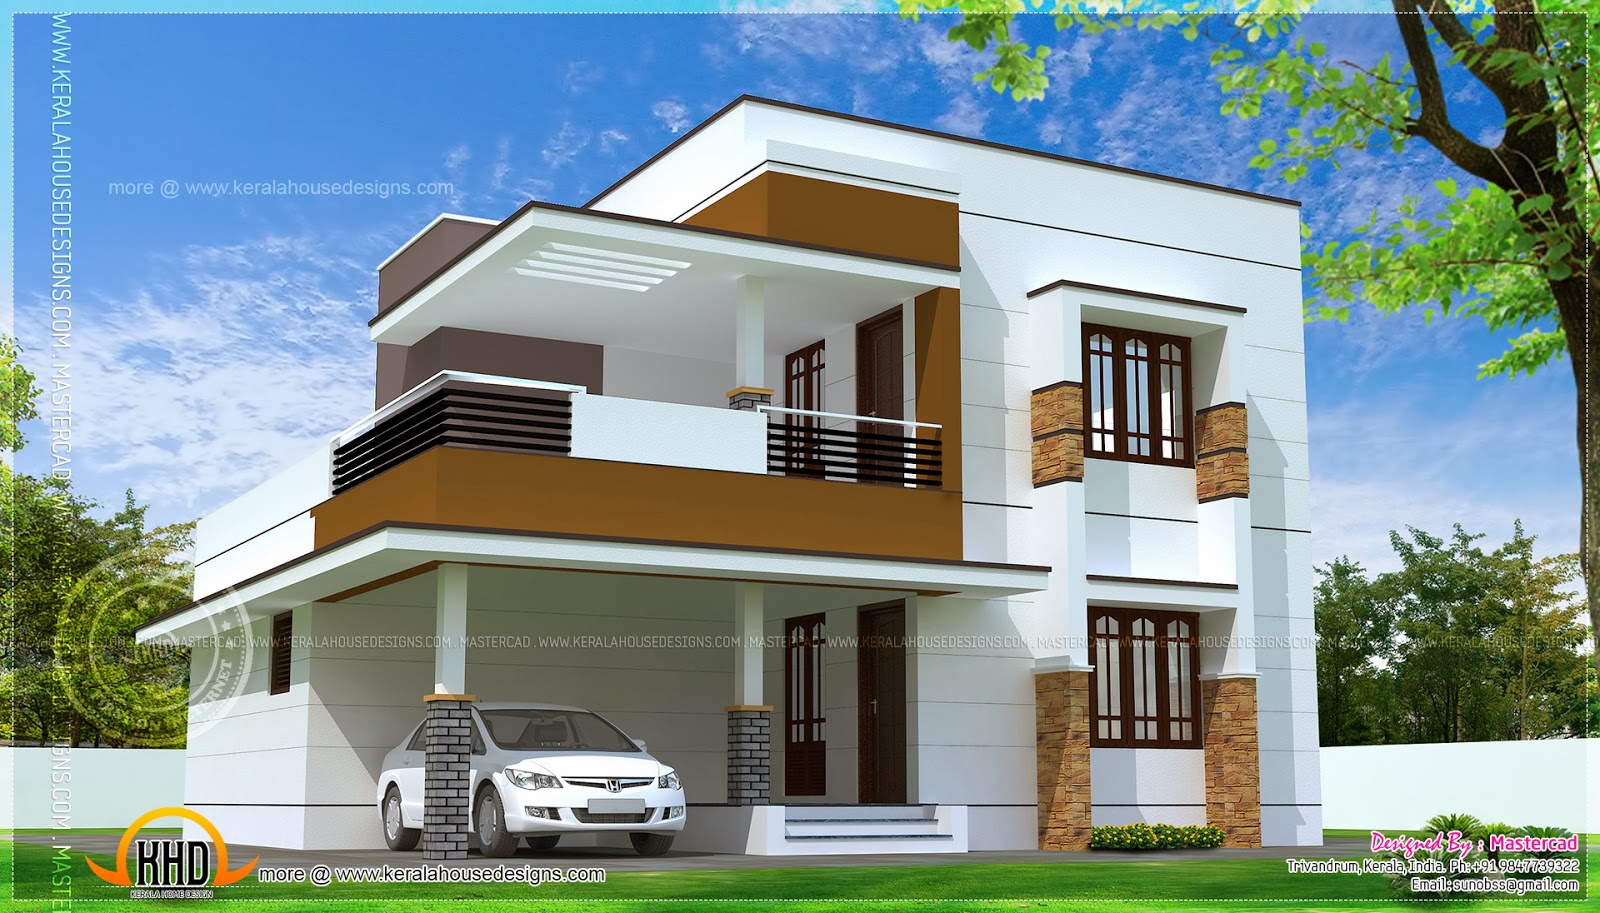 November 2013 kerala home design and floor plans for Best home designs 2013